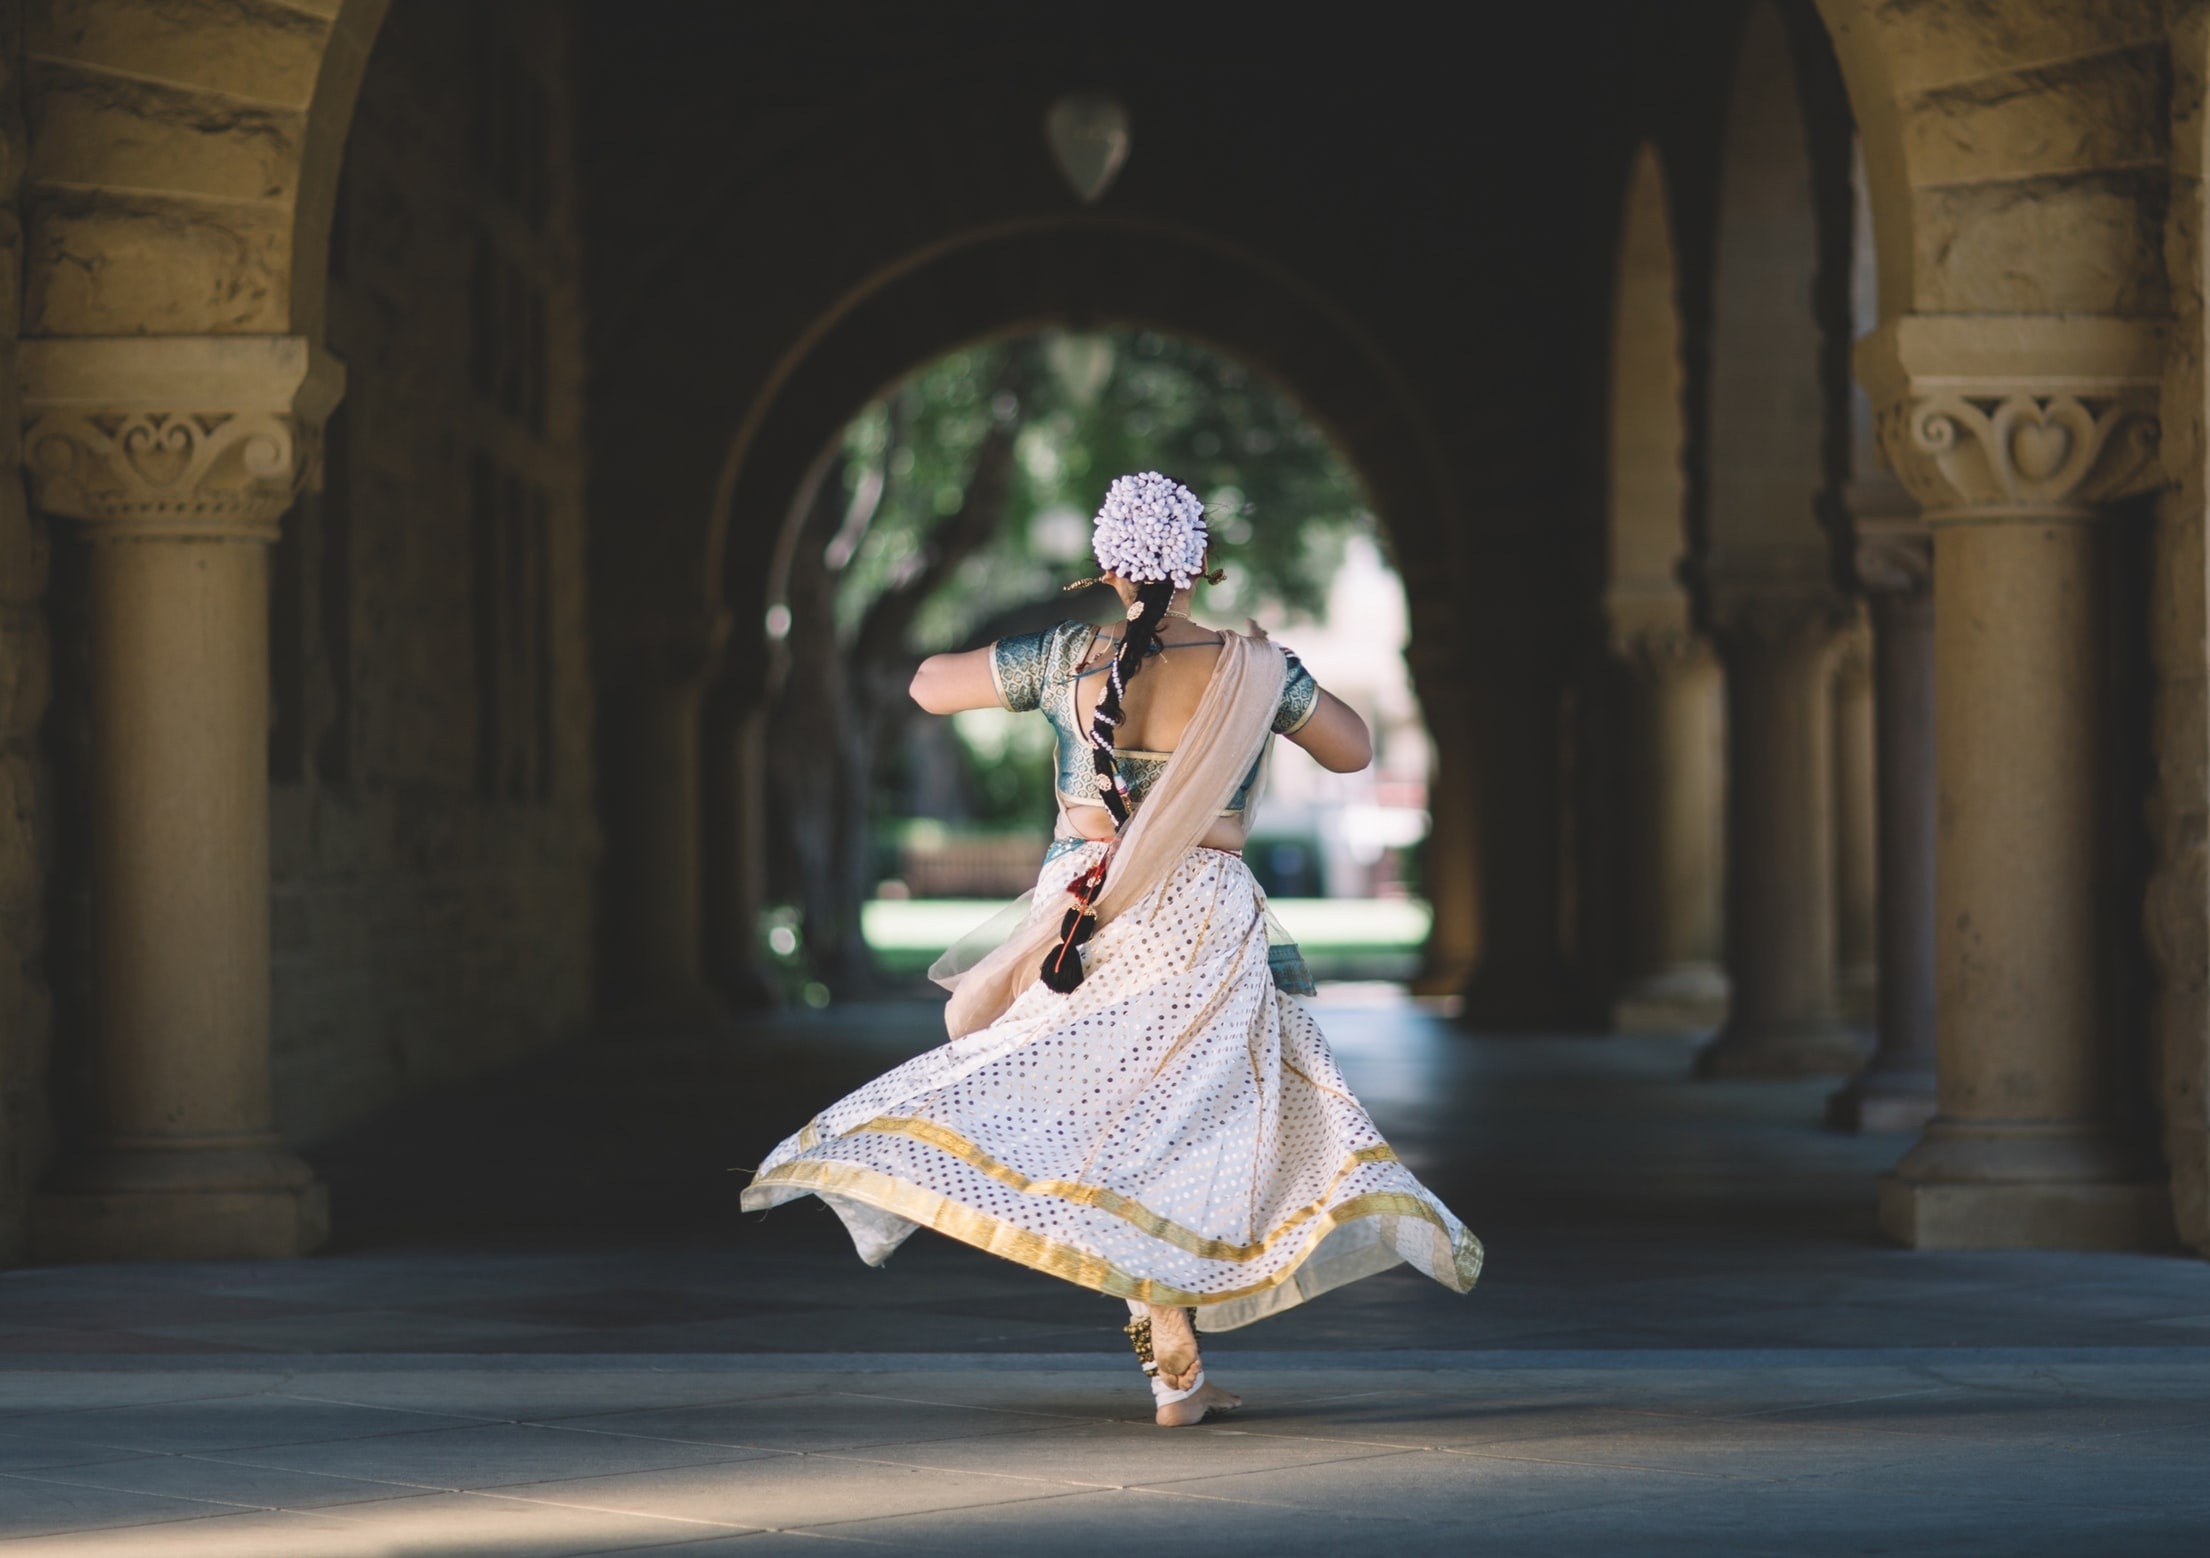 Indian woman spinning in Indian clothing